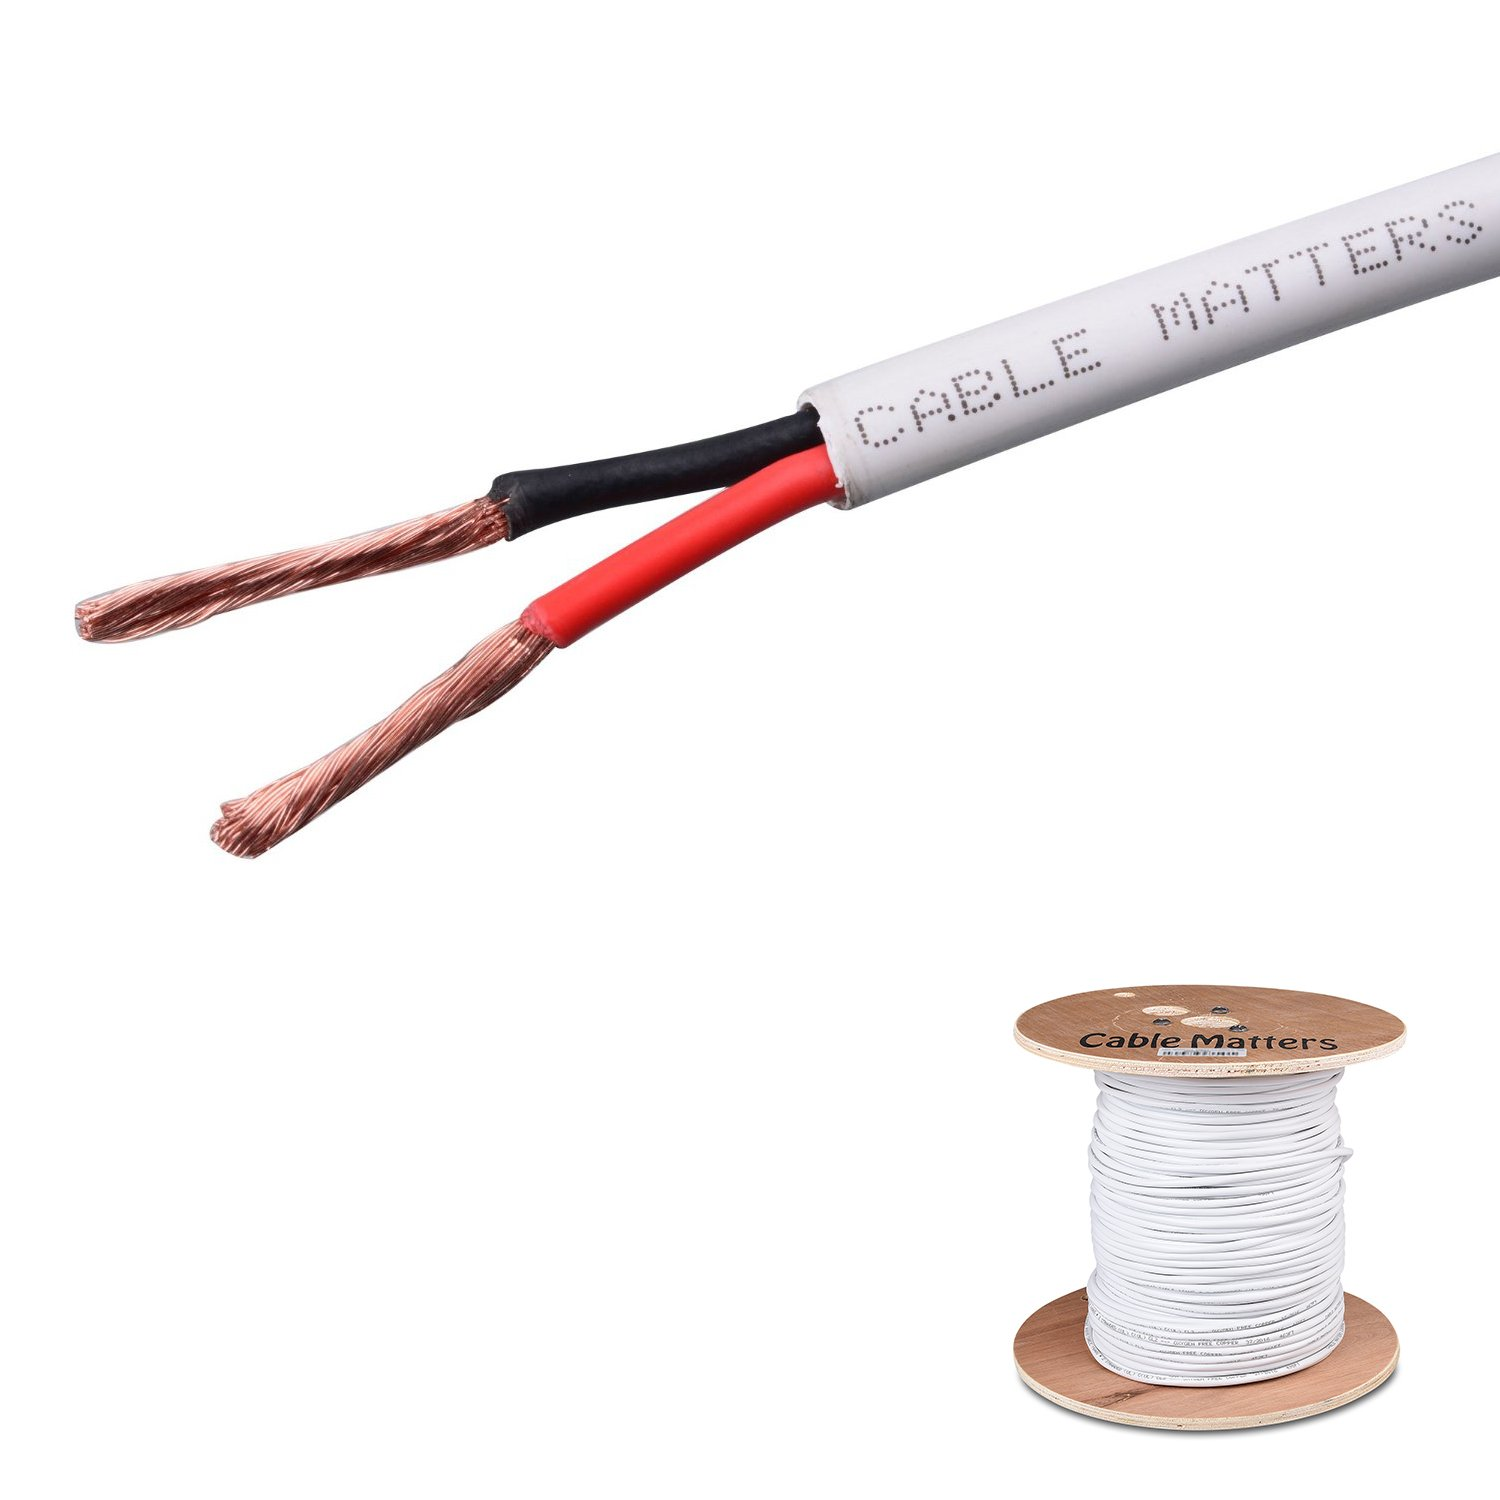 Cable Matters 2芯 インウォール 定格 (CM) 12 AWG スピーカーケーブル 100% 純銅 150m B00BWSEJTM 150m|12 AWG 12 AWG 150m